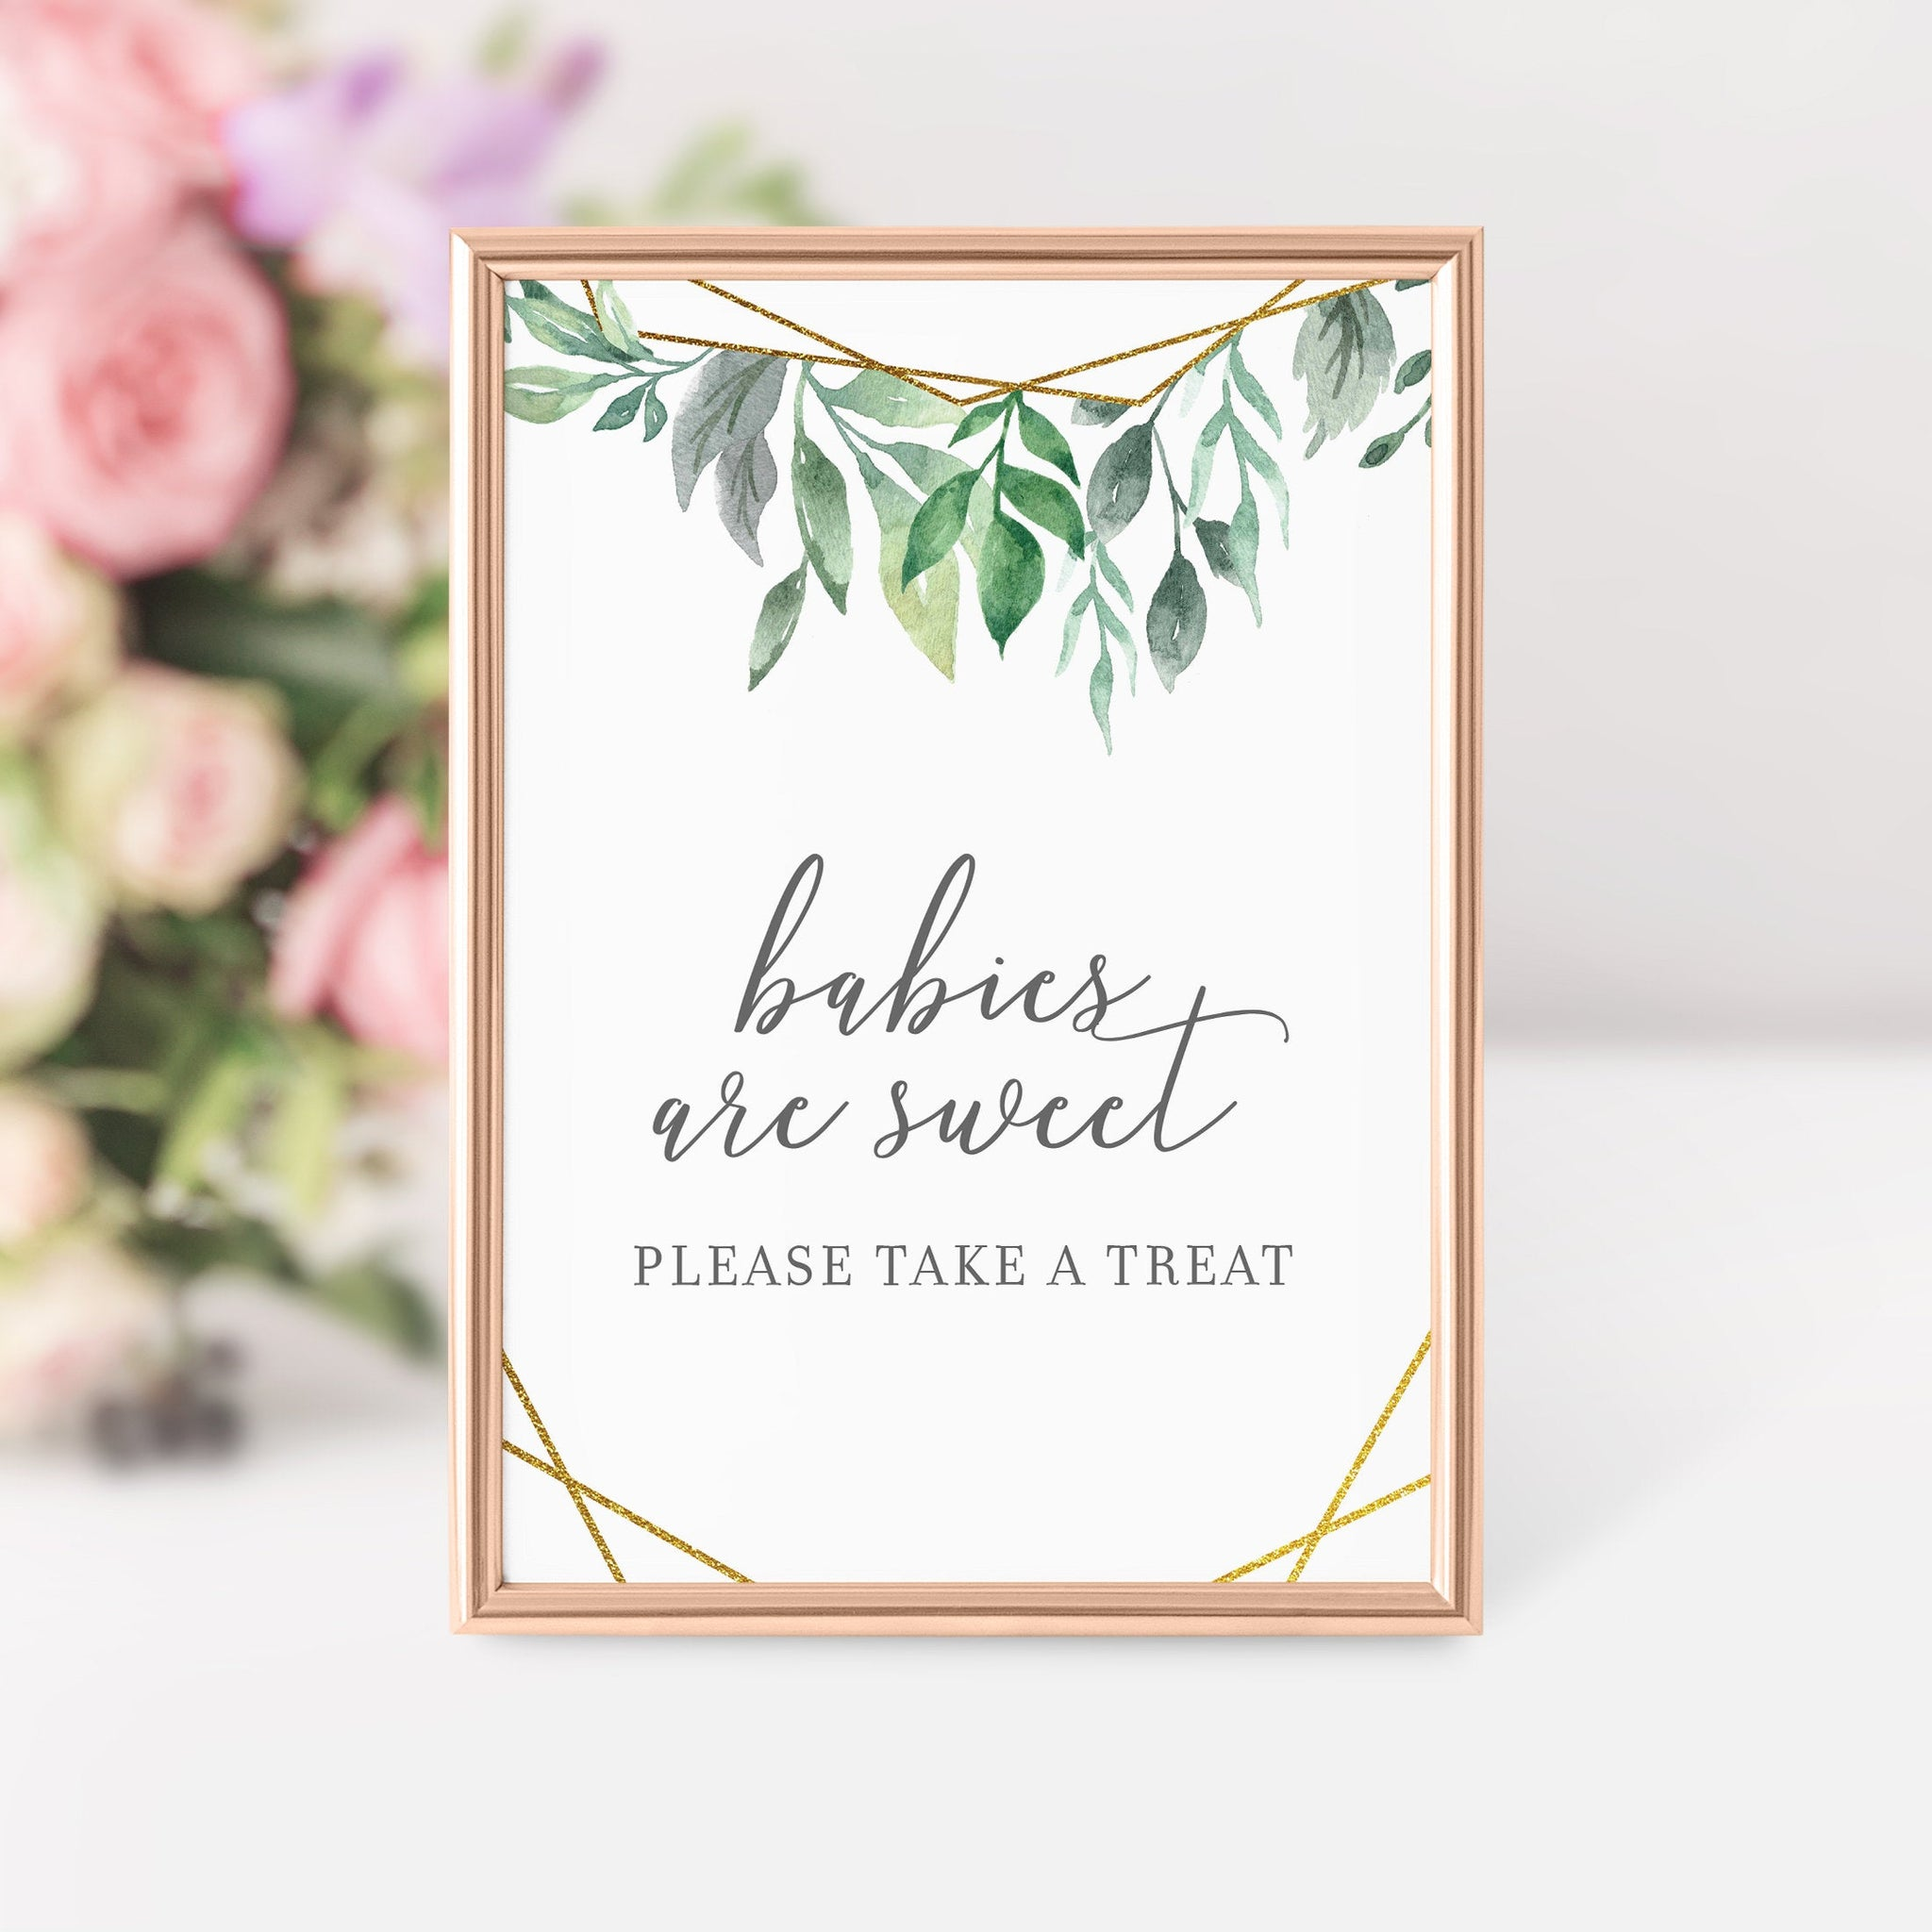 Geometric Gold Greenery Printable Treat Sign, INSTANT DOWNLOAD, Baby Shower Sip and See Babies Are Sweet Dessert Table Decorations - GFG100 - @PlumPolkaDot